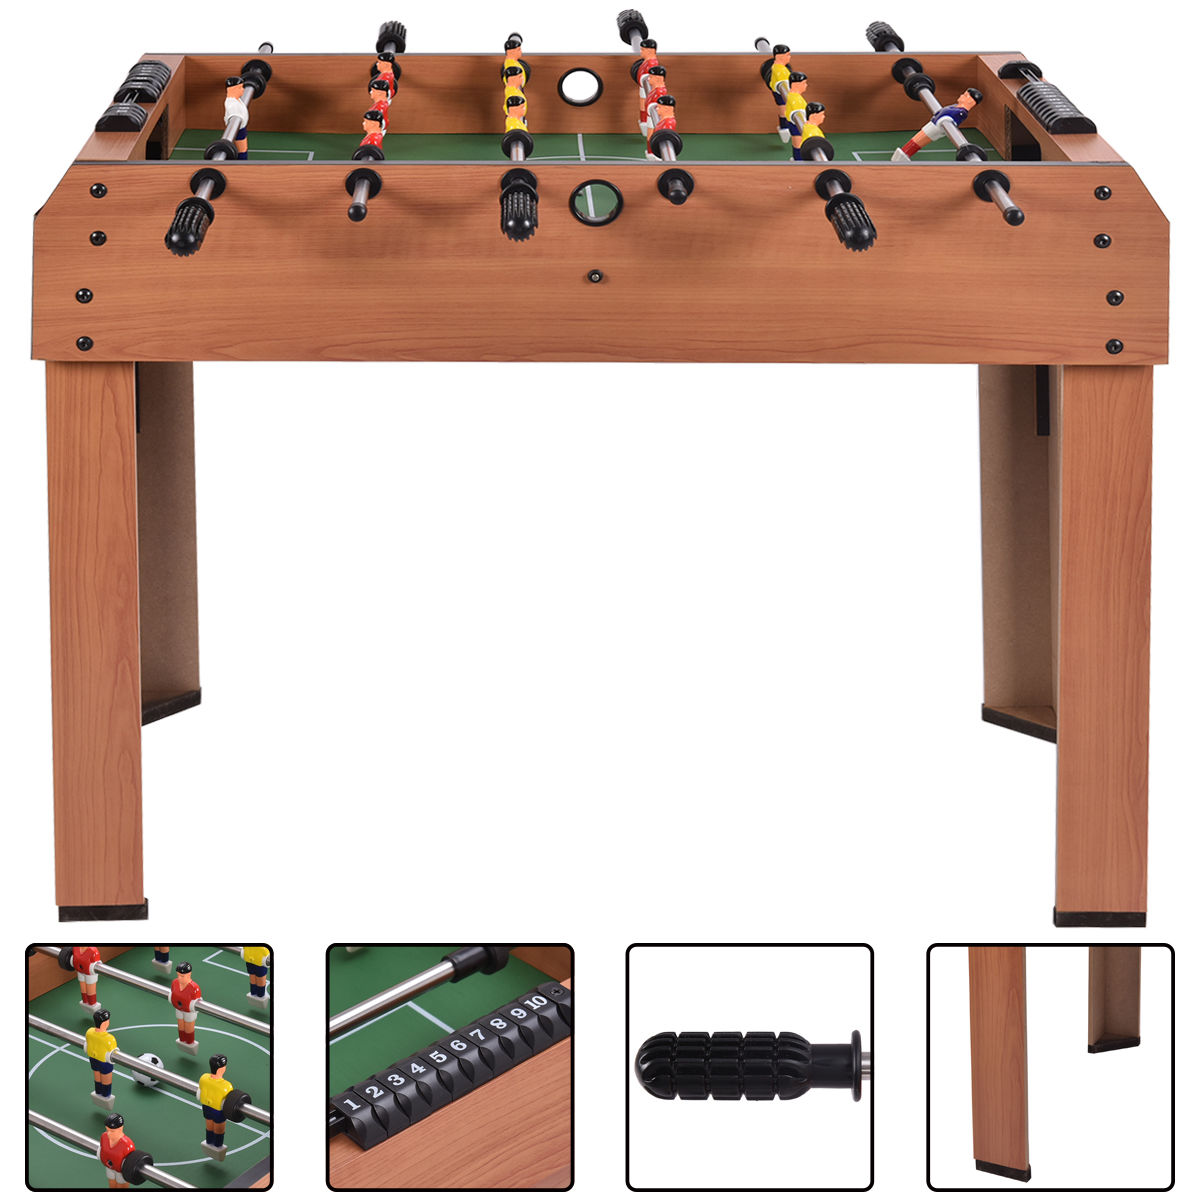 Costway 37'' Foosball Table Competition Game Soccer Arcade Sized football Sports Indooor by Costway